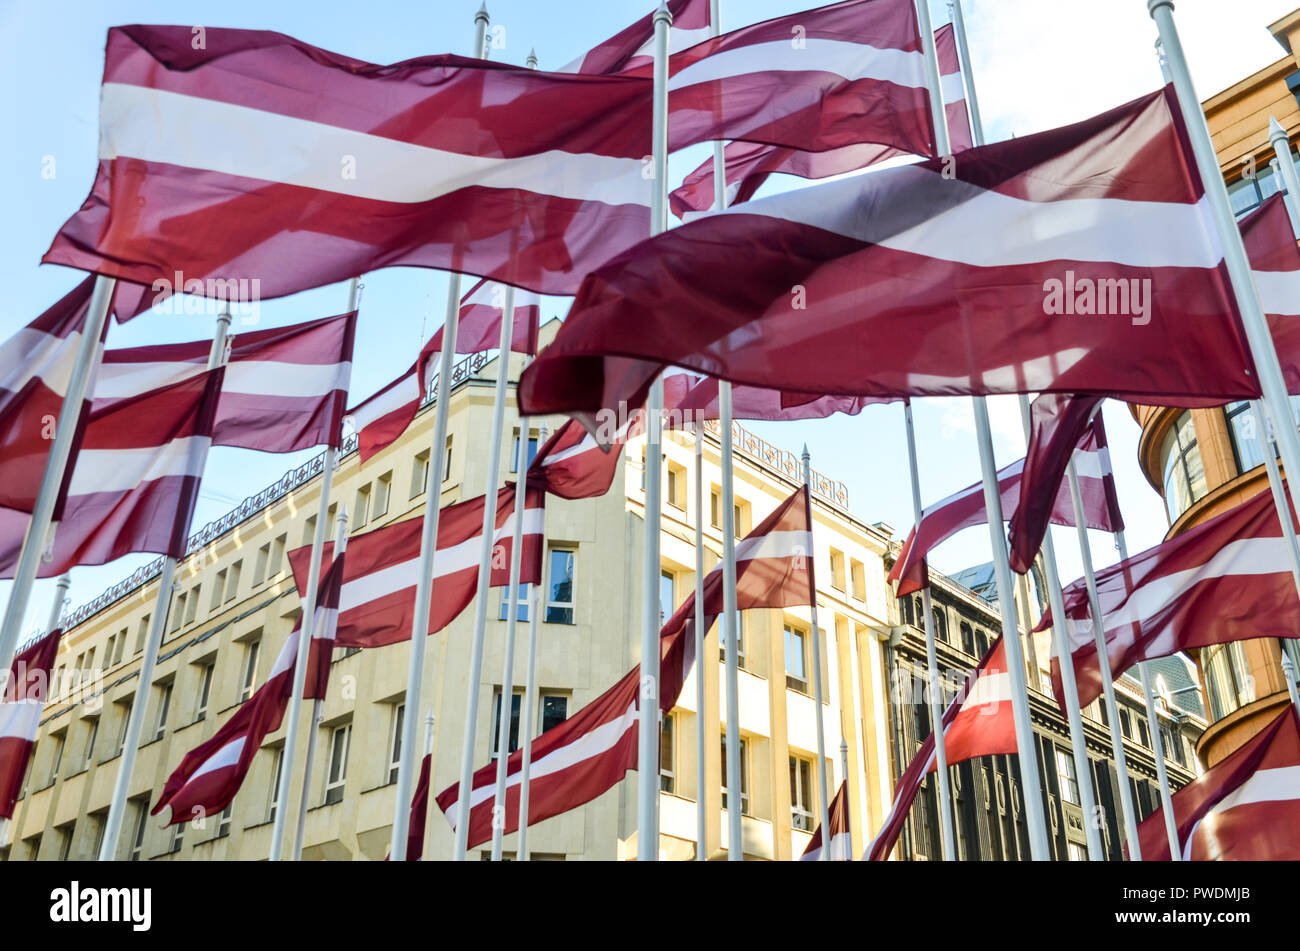 Latvian flags flying in Riga, Latvia - Stock Image